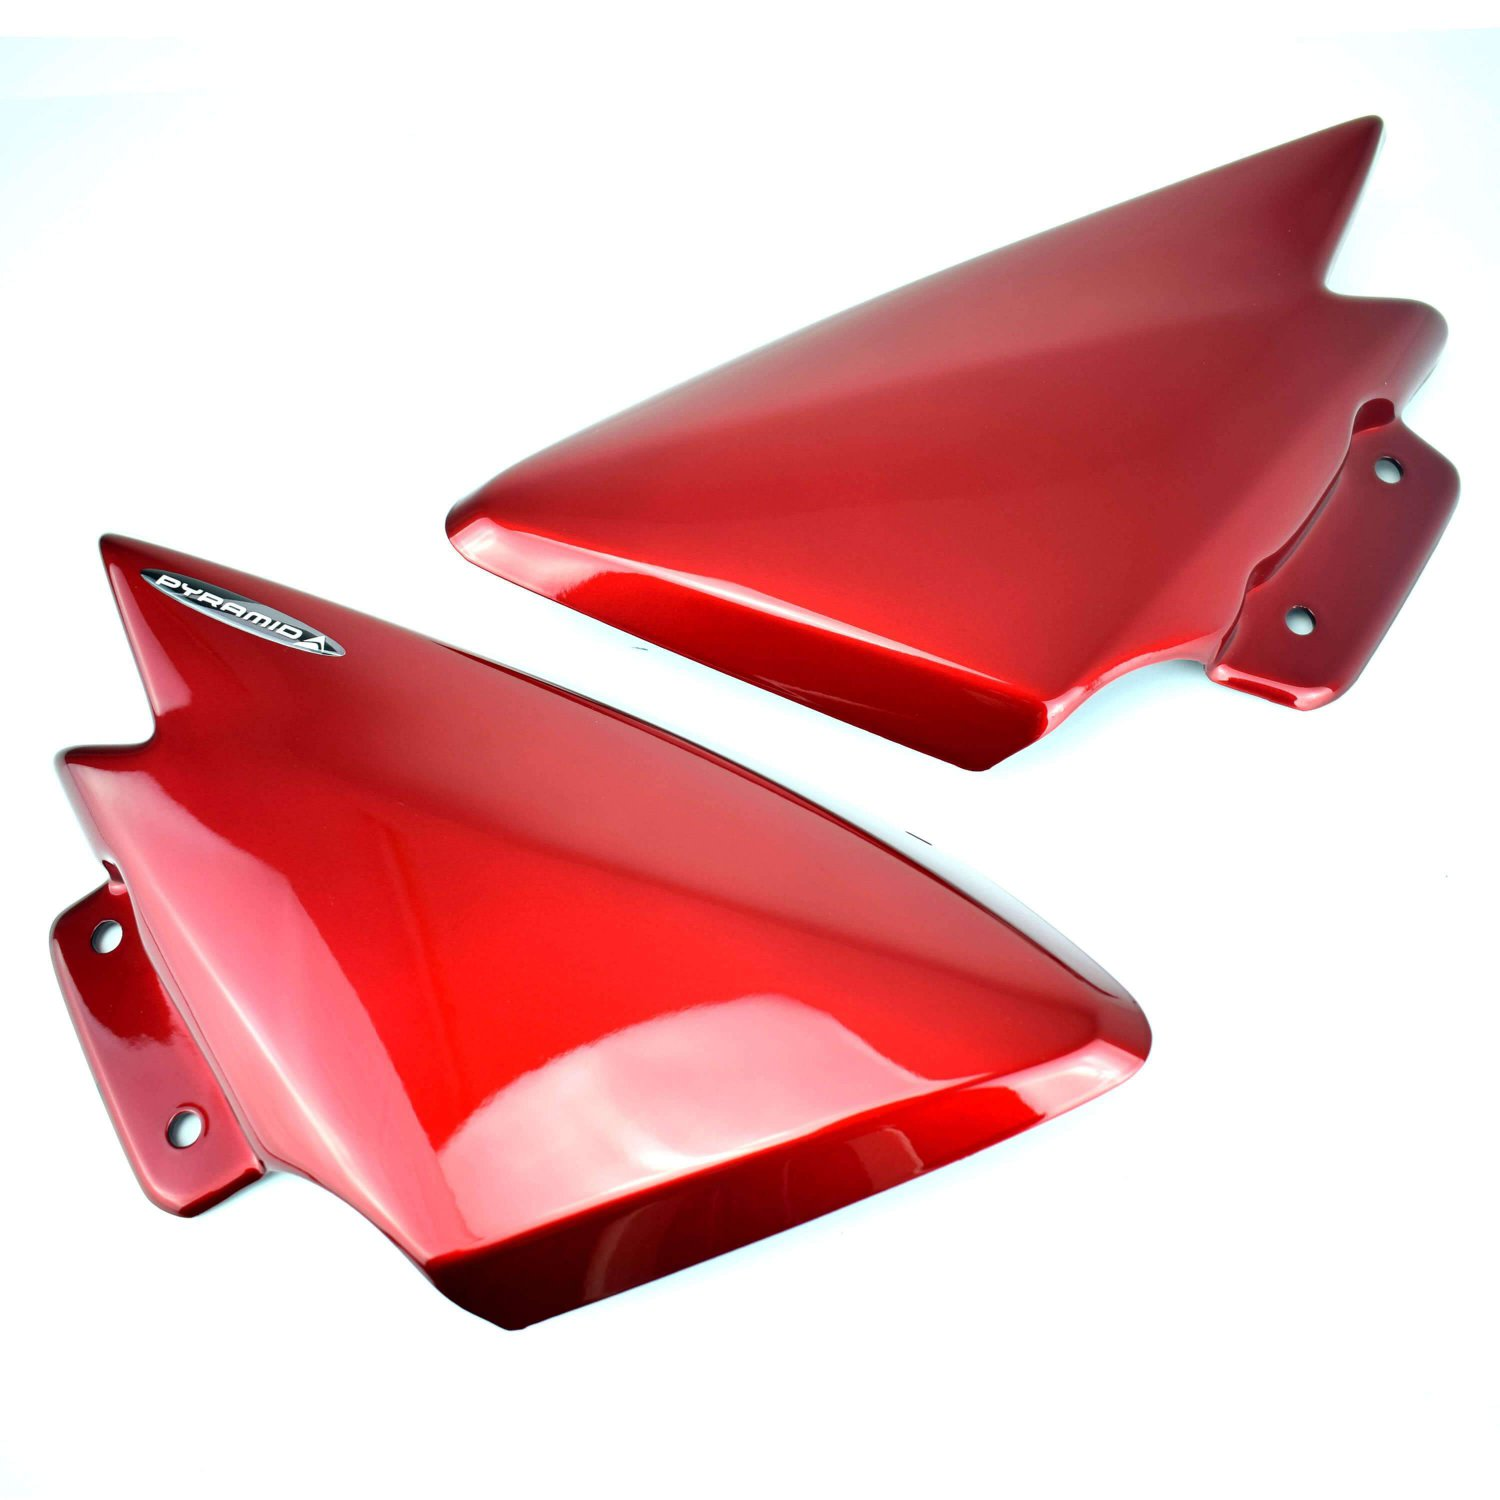 Yamaha MT09 / FZ09 (13-16)  Frame Infill Cover Panels: Lava Red 22133L